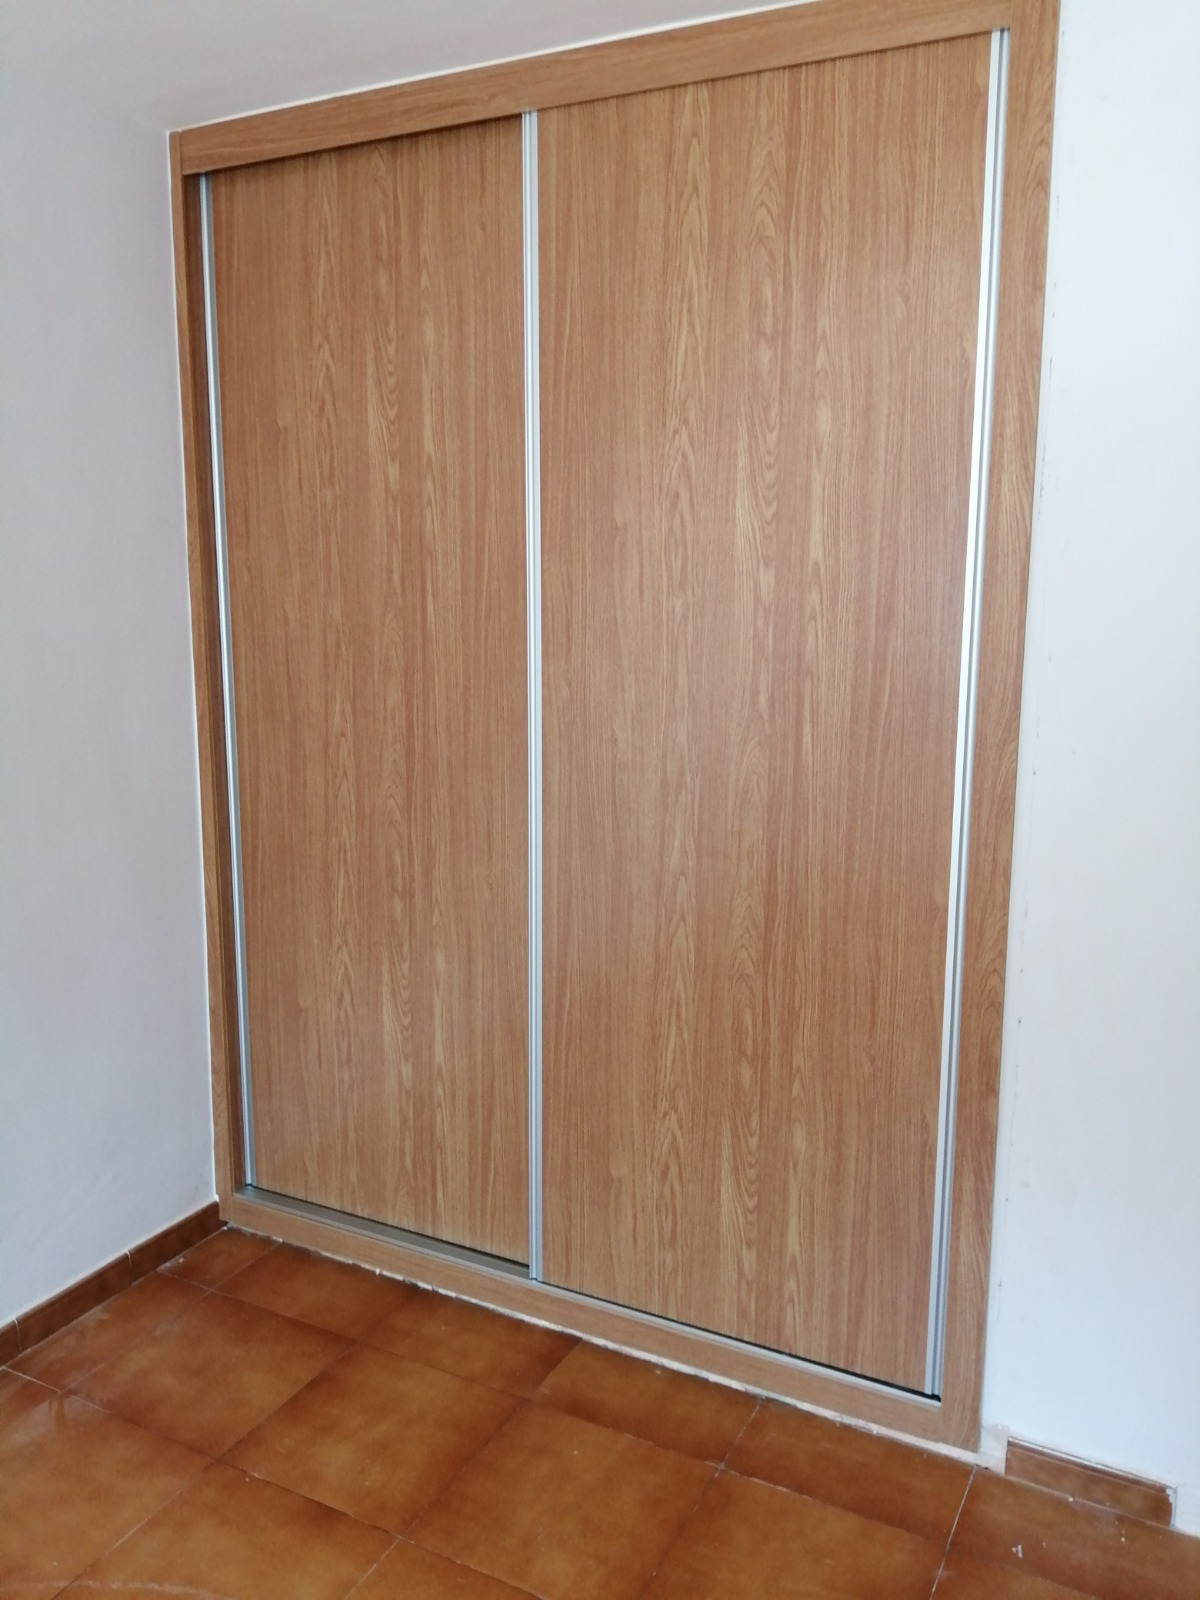 fitted wardrobes Polop